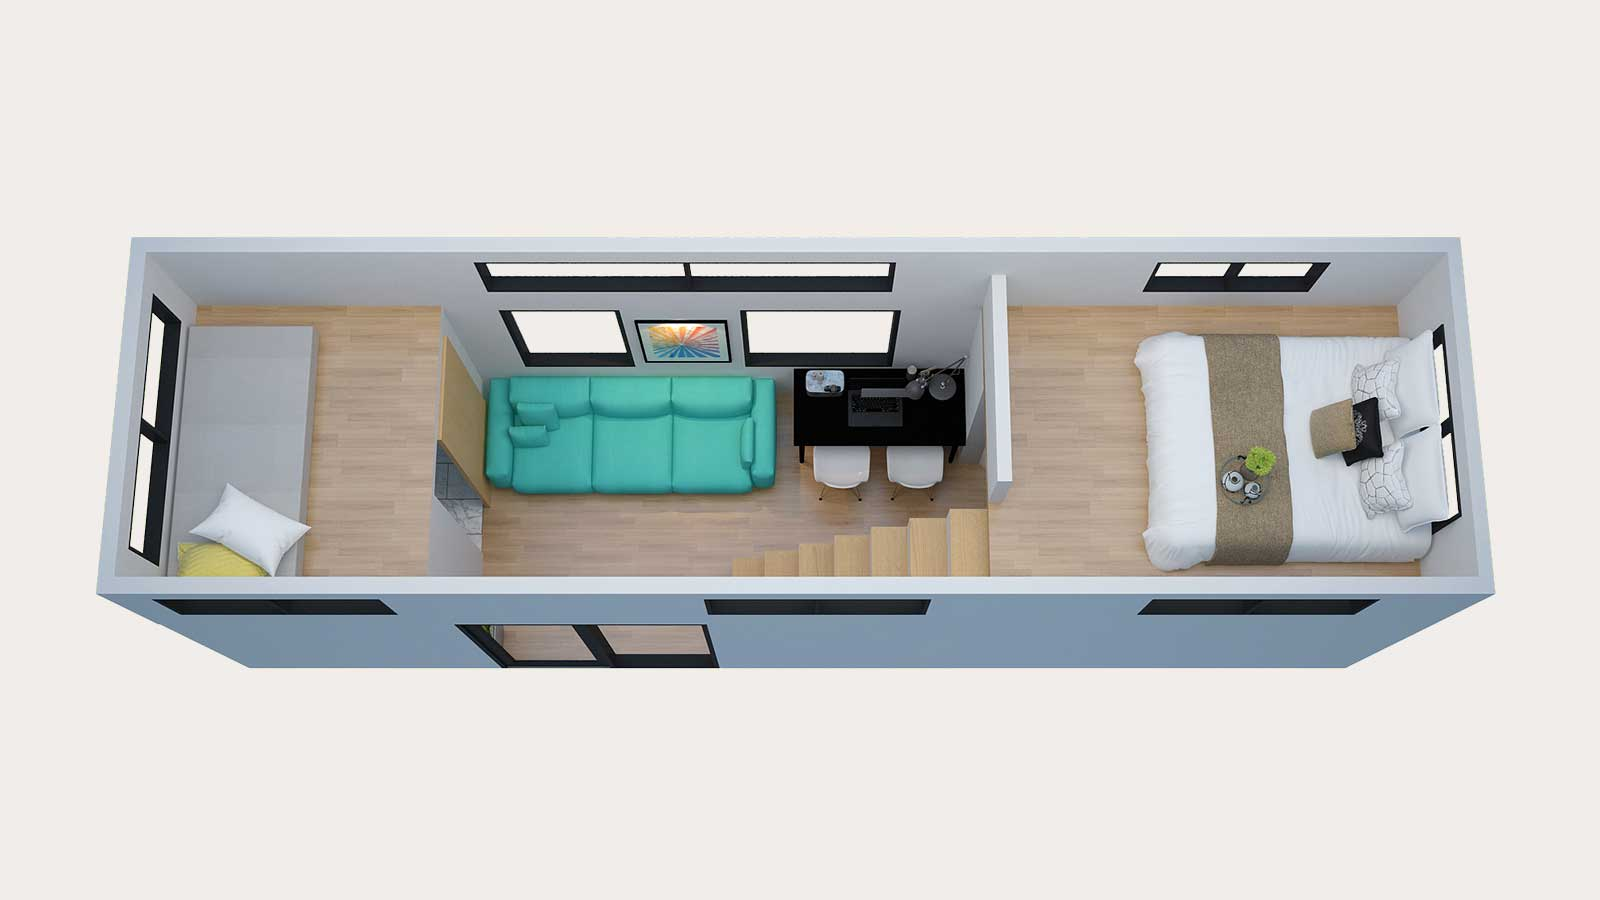 Floor plans of tiny home model - loft